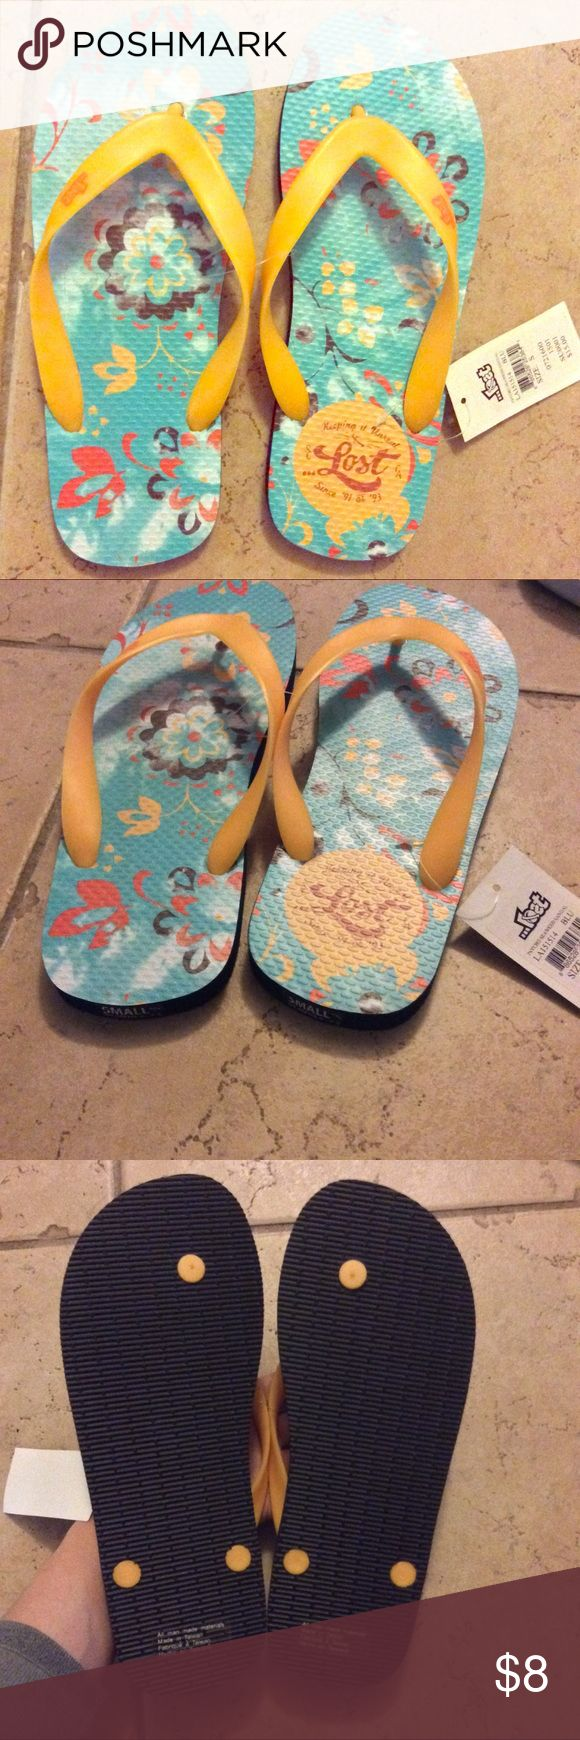 LOST Psycho Seaweed Floppers NWT  Comfy flipper floppers. Size small or a men's size 6-7.5. Thats what the tag says lol. I'm a size 7 and they're just wide all over. So for a women's size, I'd say they will fit a 7.5 Wide. LOST Shoes Sandals